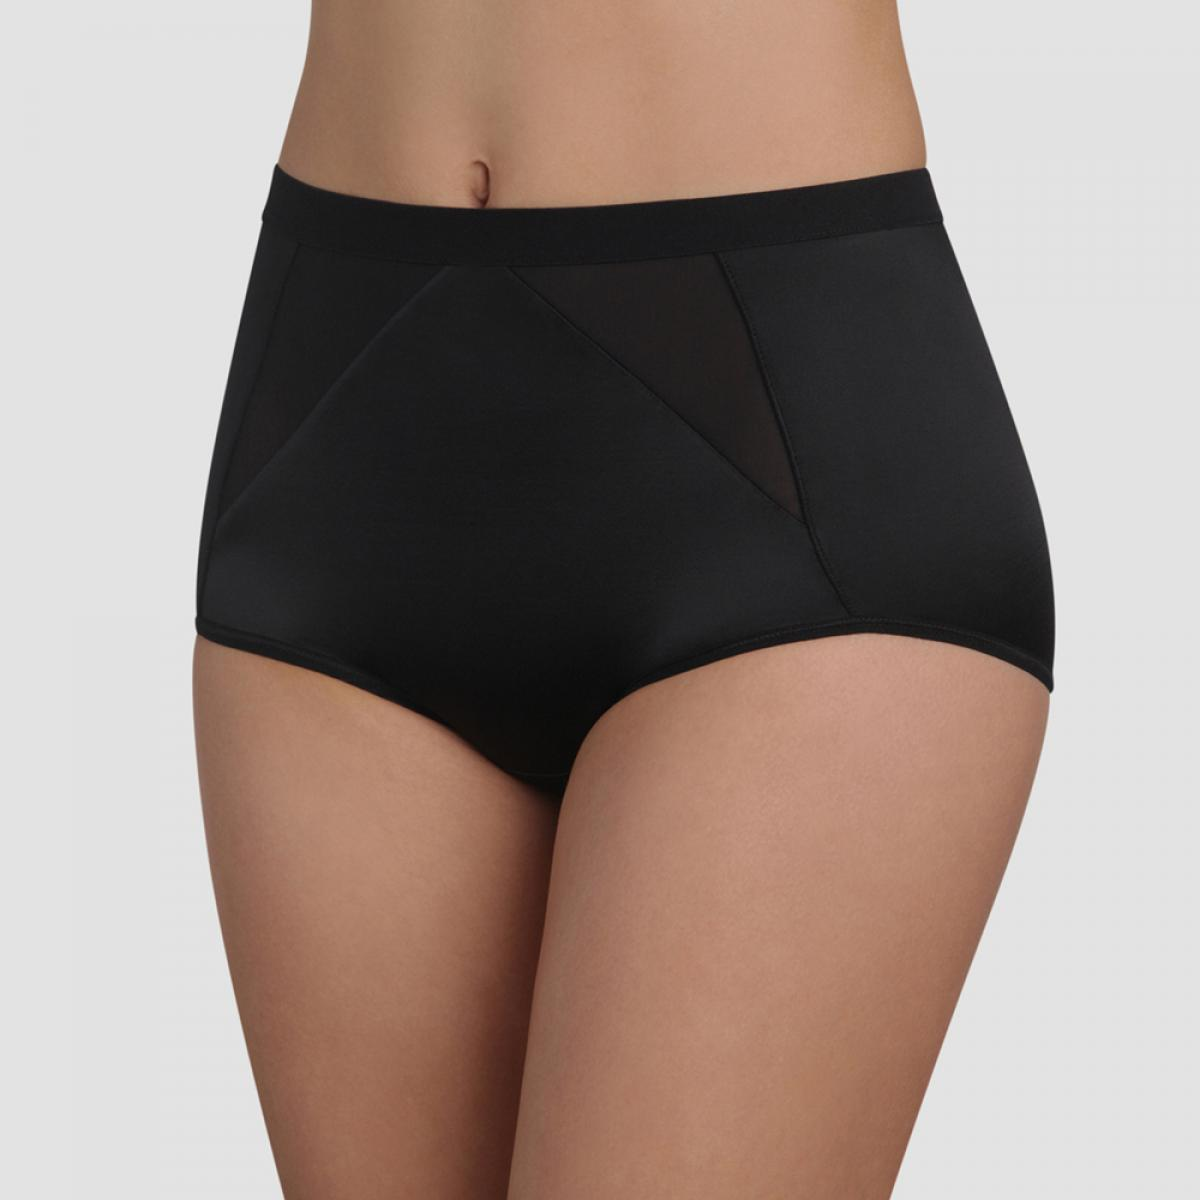 Culotte taille haute Playtex PERFECT SILHOUETTE noire